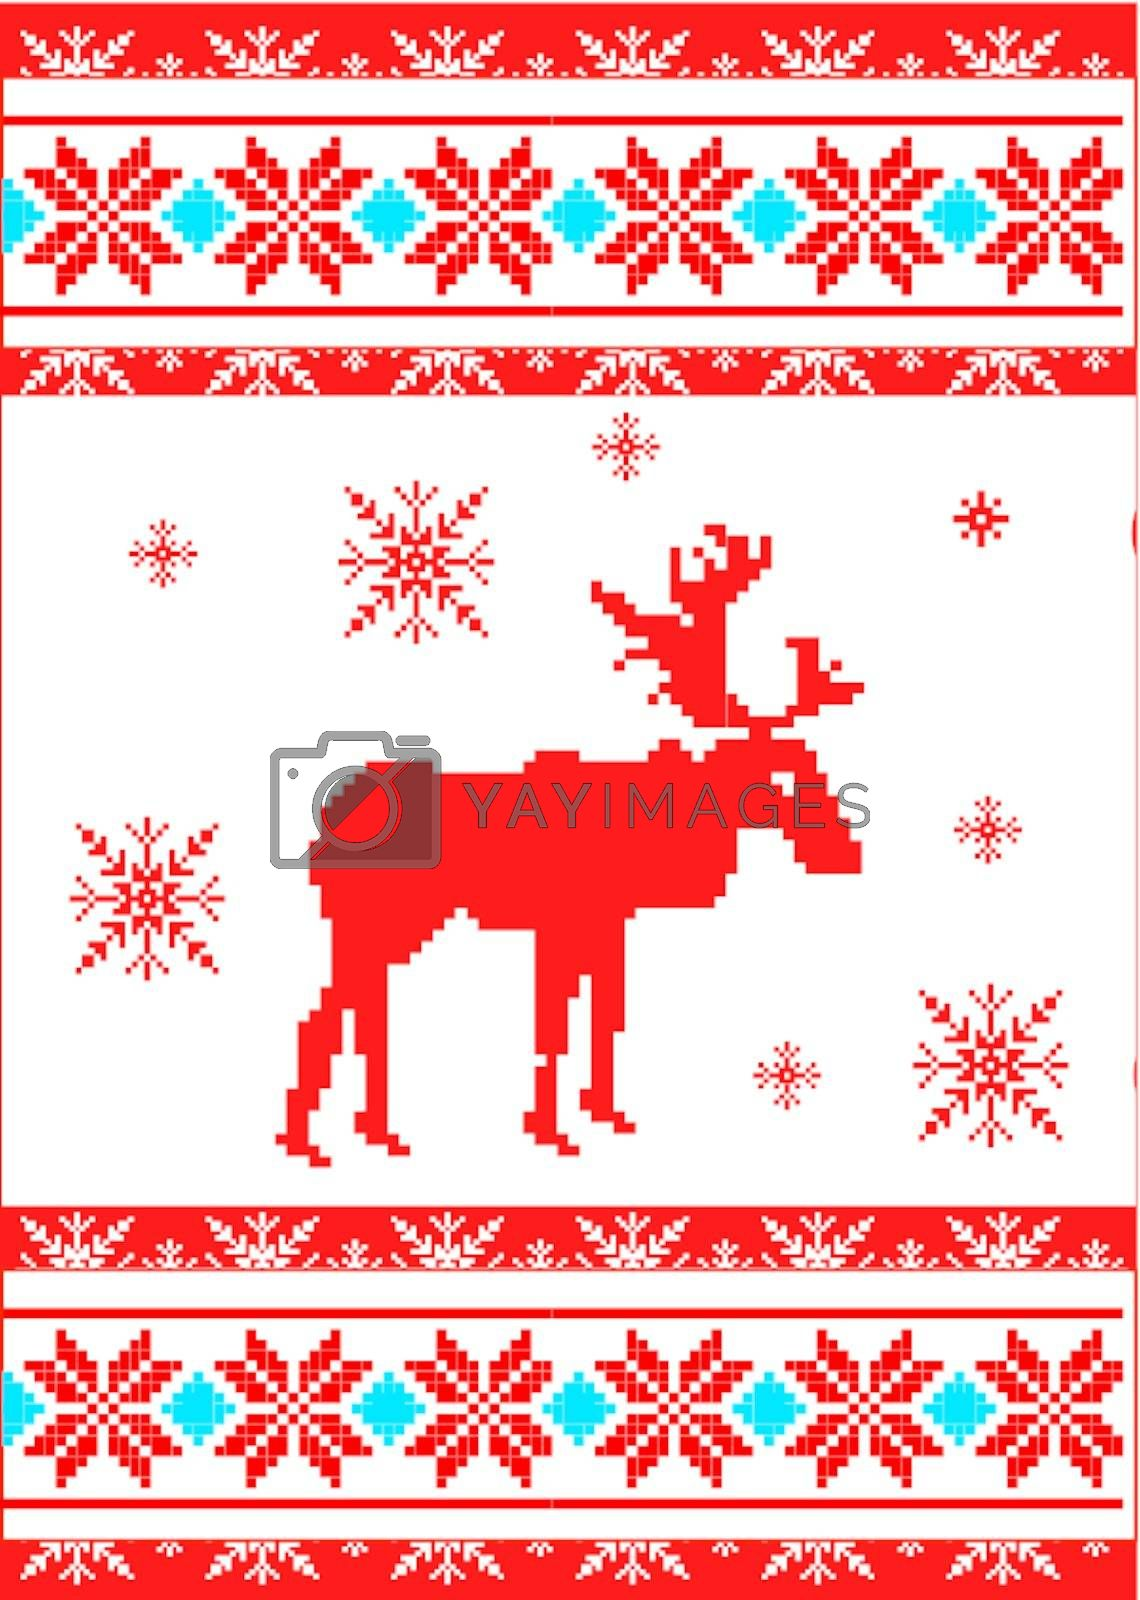 ornament with reindeer and snowflakes